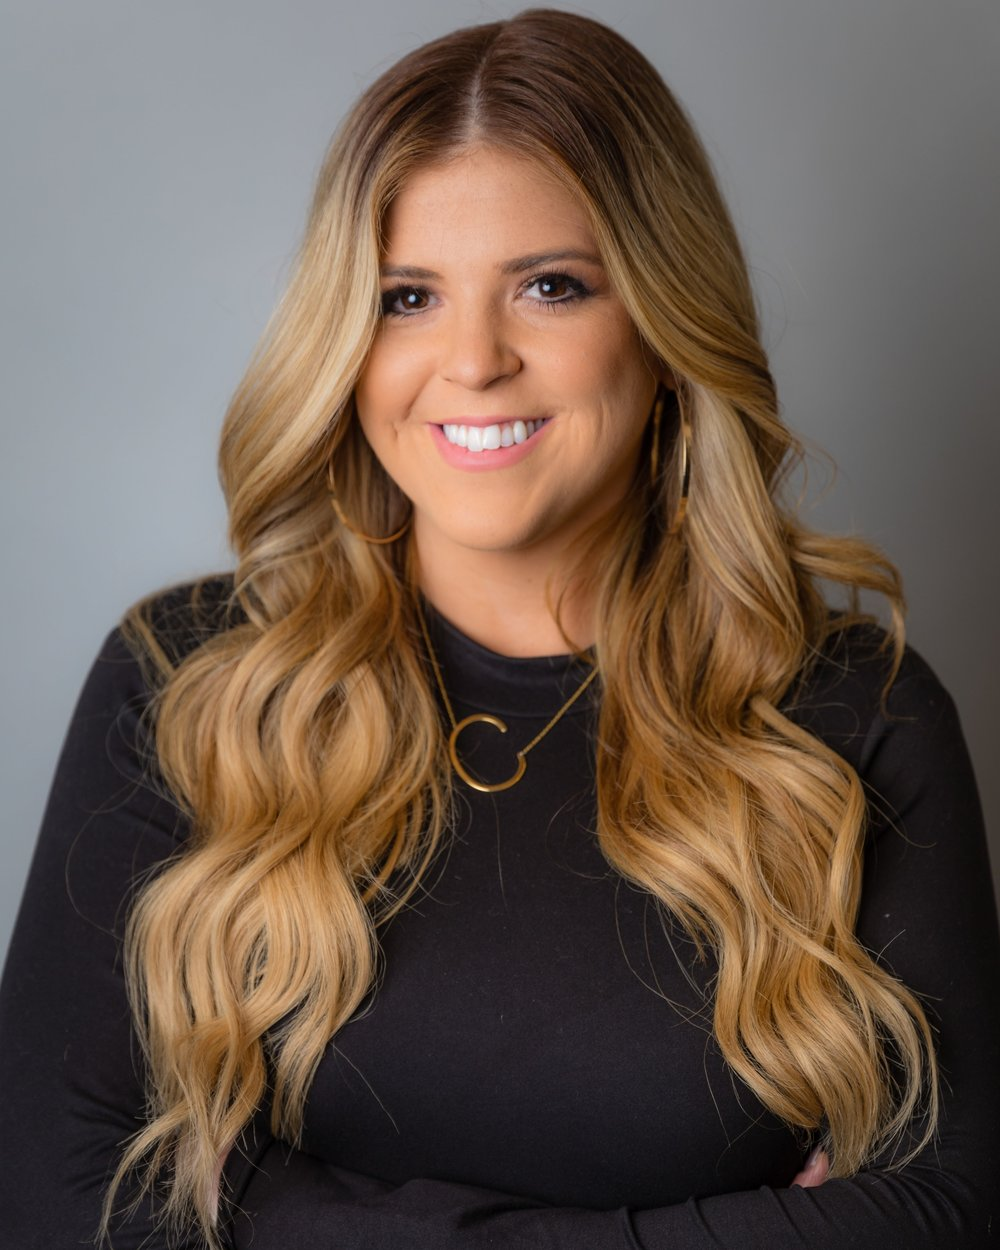 Casey Browne - @casebrowne_hairSince 2012I want my clients to feel confident and beautiful!SpecialtiesBalayage, foiling, long thick hair, beach wave styleRecent TrainingGoldwell: Robert Brown - Fierce Formulations & @PURE PIGMENTSGoldwell Academy NYCGoldwell: Formulation, Blondes & Highlights, Corrective WorkRedken Symposium Las VegasPrinciples of Cutting with Lauren Hagen